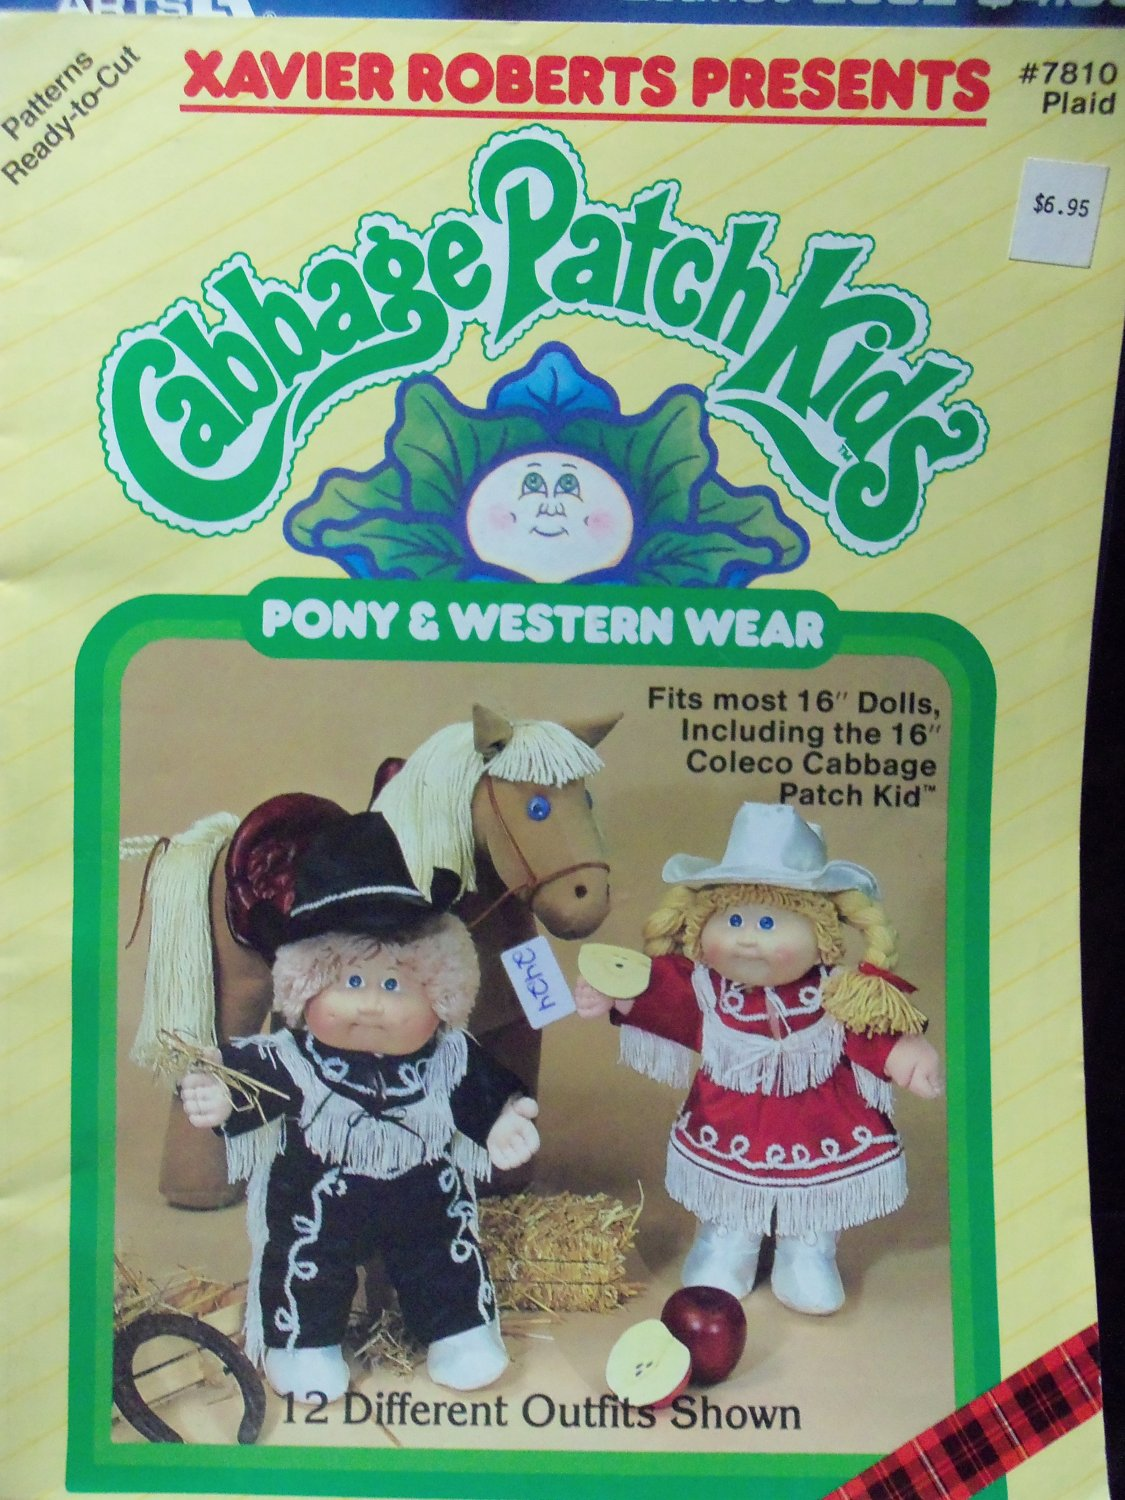 Vintage ~ Xavier Roberts Presents Cabbage Patch Kids Pony and Western Wear #7810 SEWING Pattern